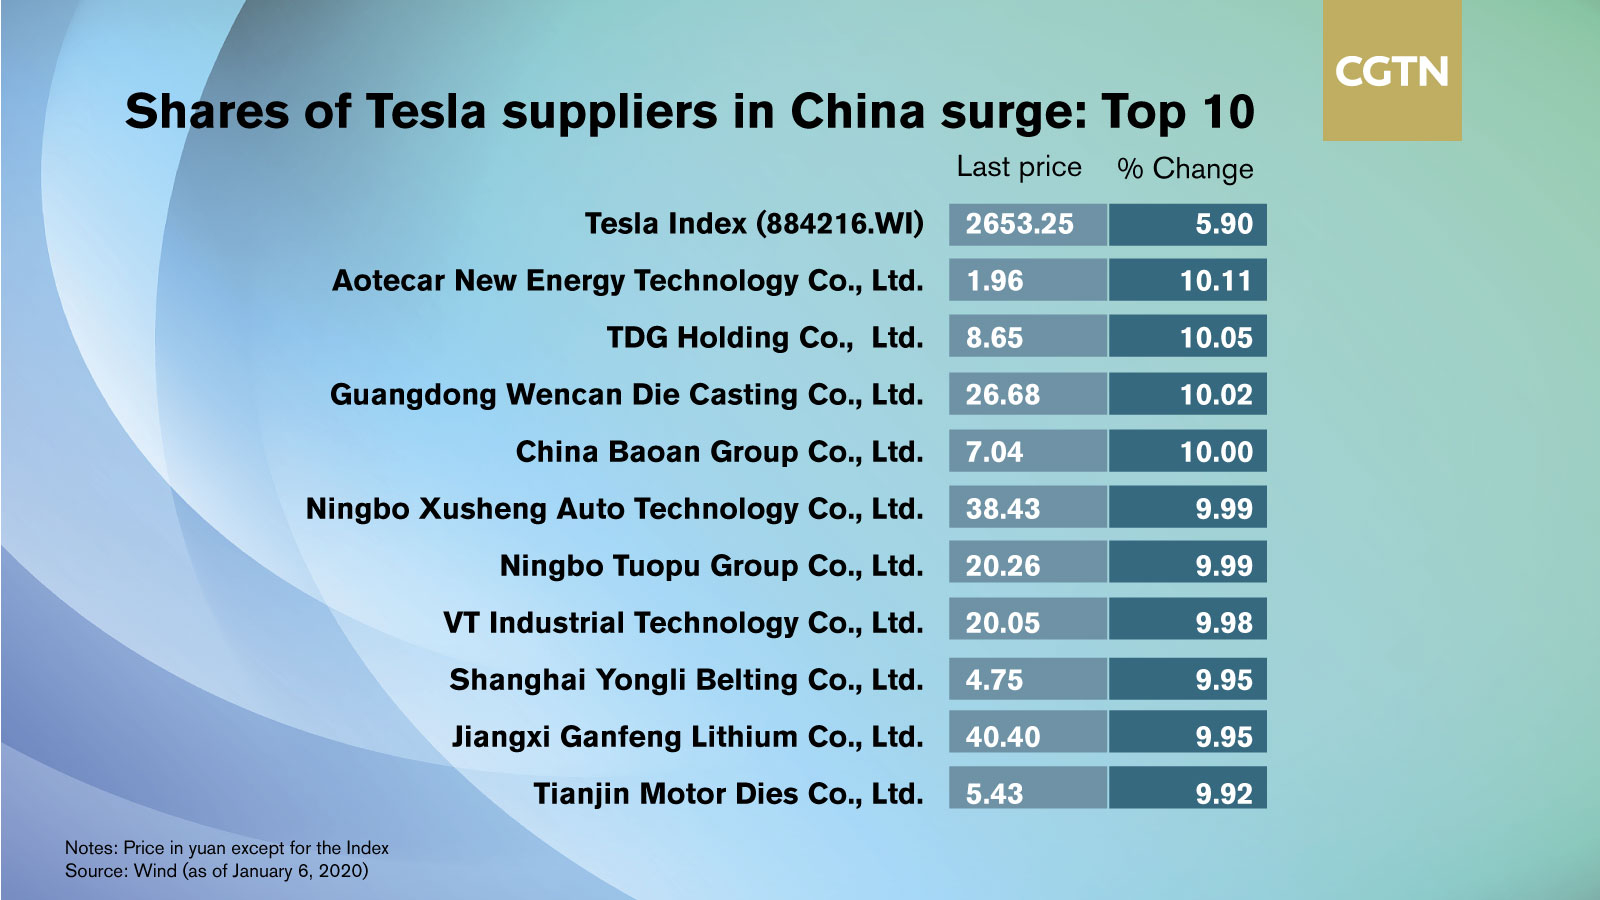 Tesla's Model 3 price cut boosts its Chinese suppliers - CGTN